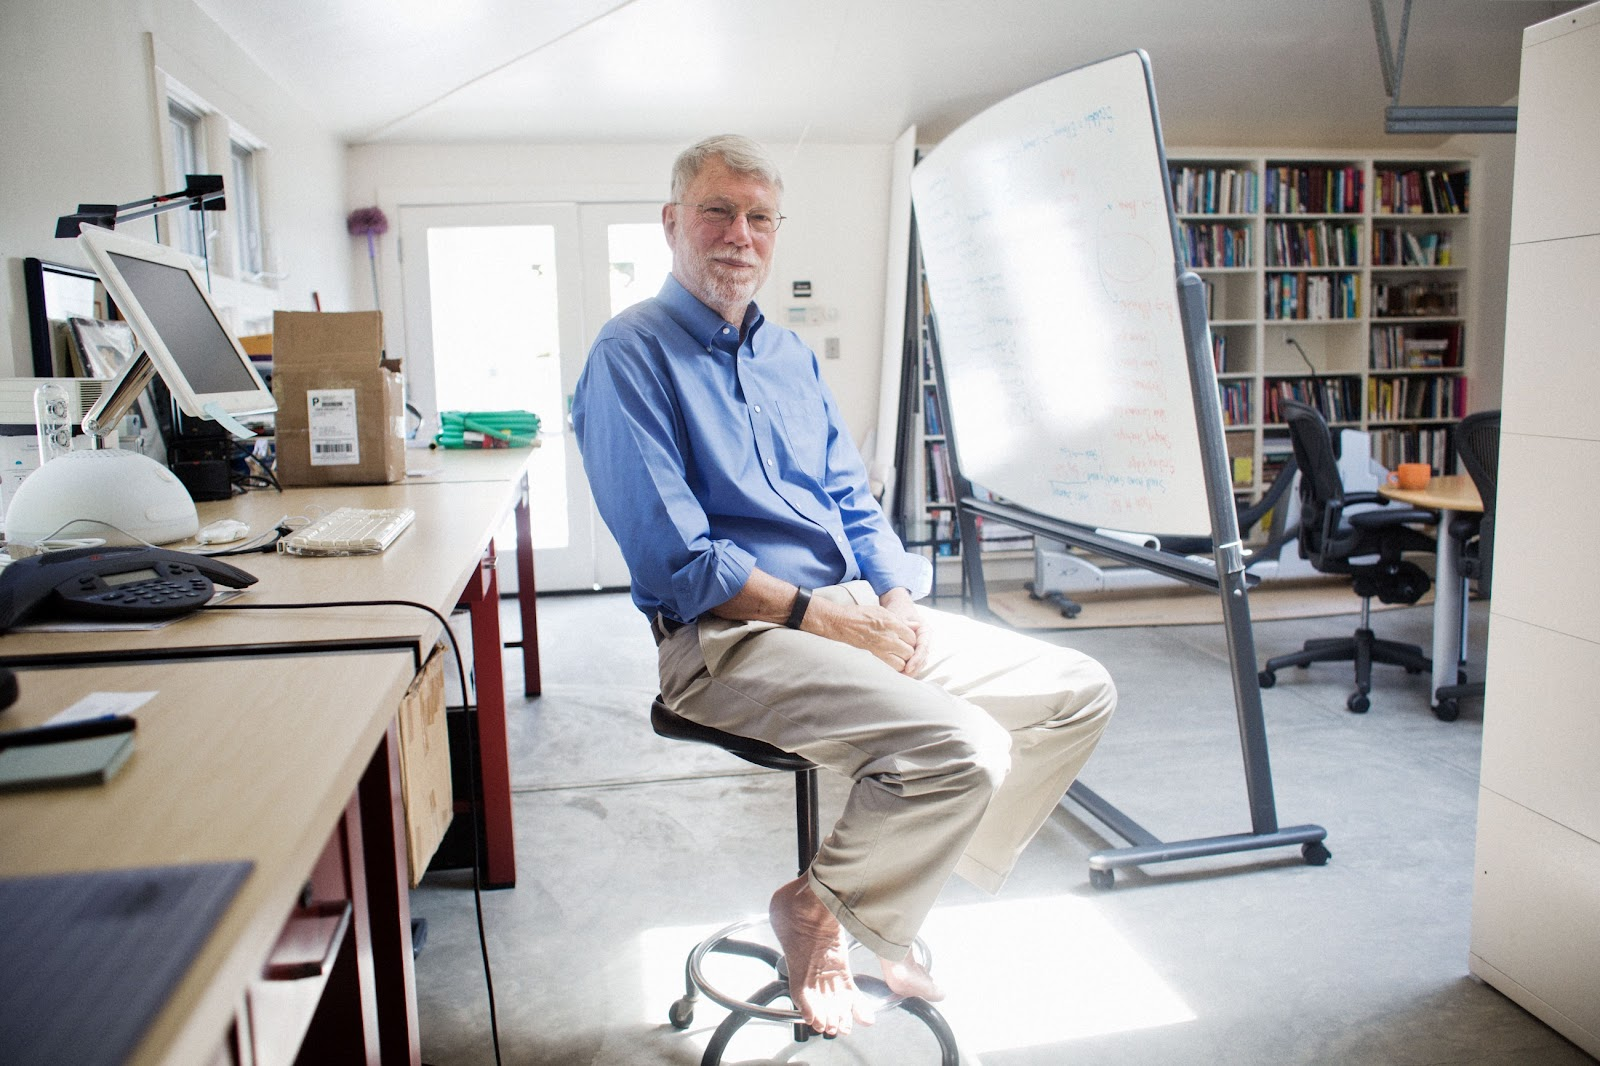 John Seely Brown, co-founder of Calm Design Principles, sits barefoot on a stool in his office.